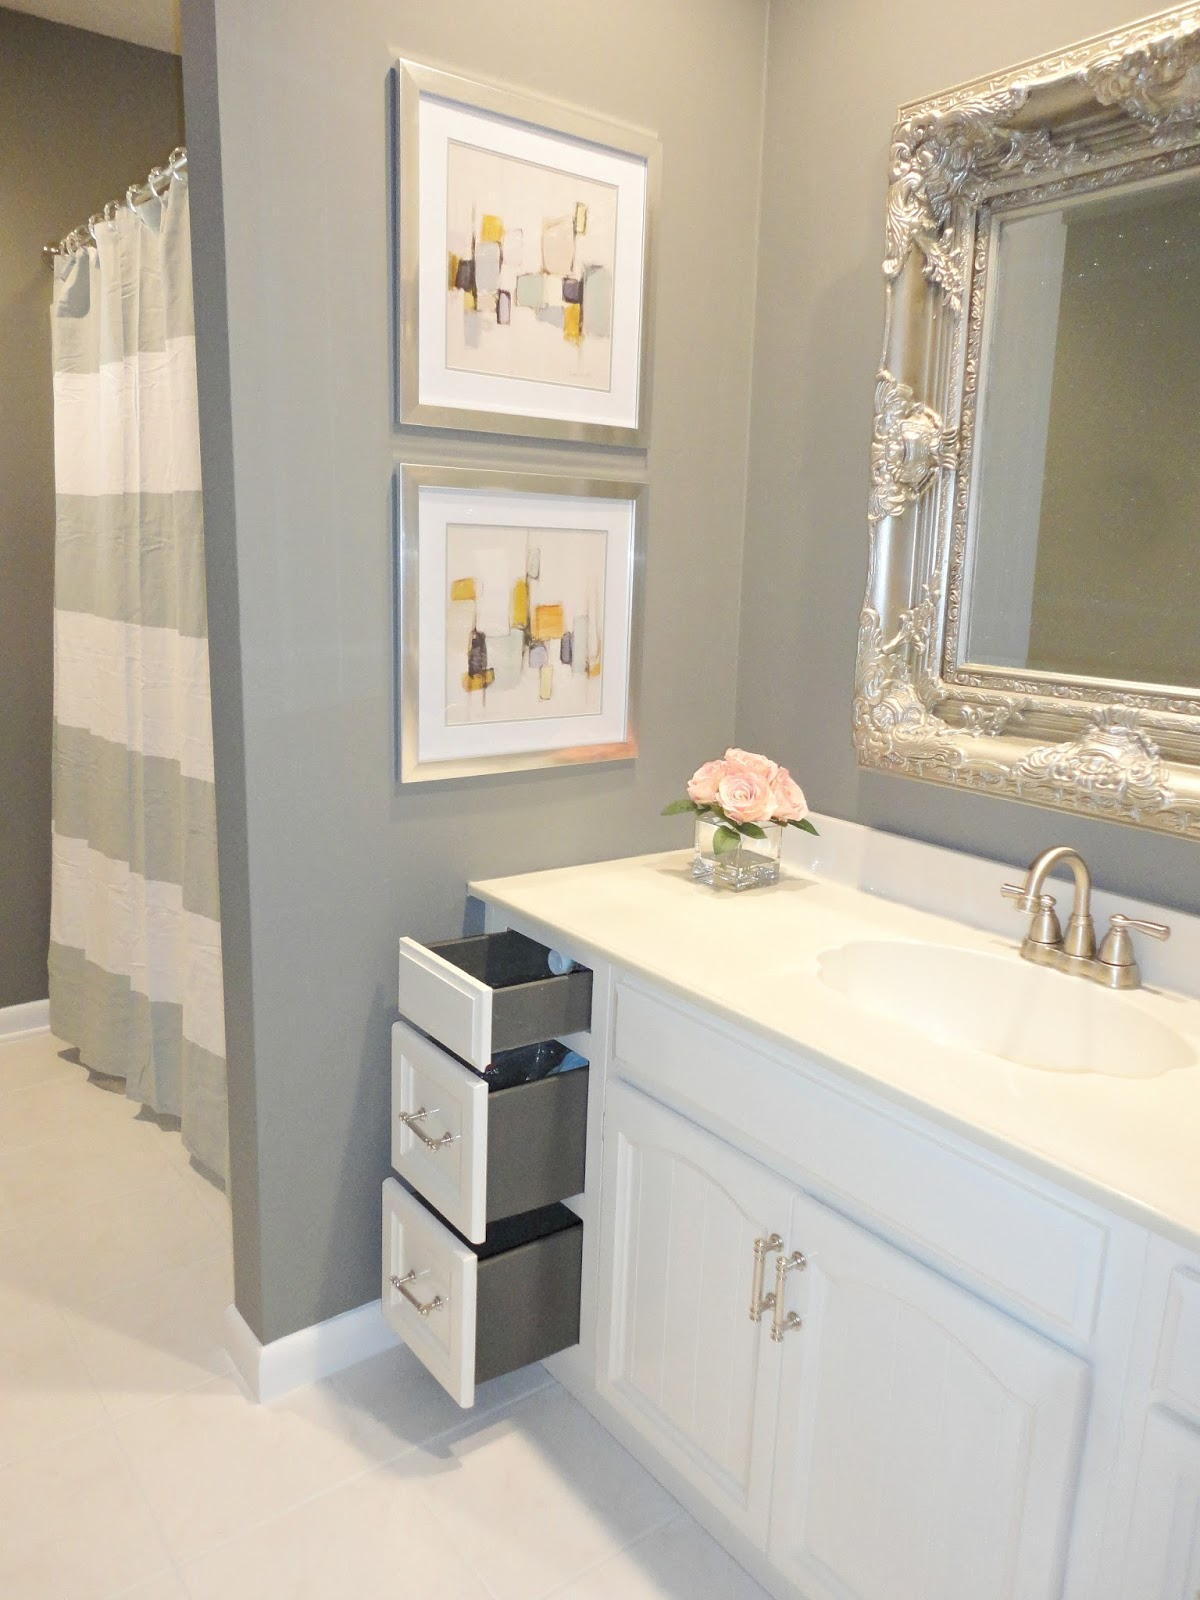 Bathroom Remodel Mirrors livelovediy: diy bathroom remodel on a budget